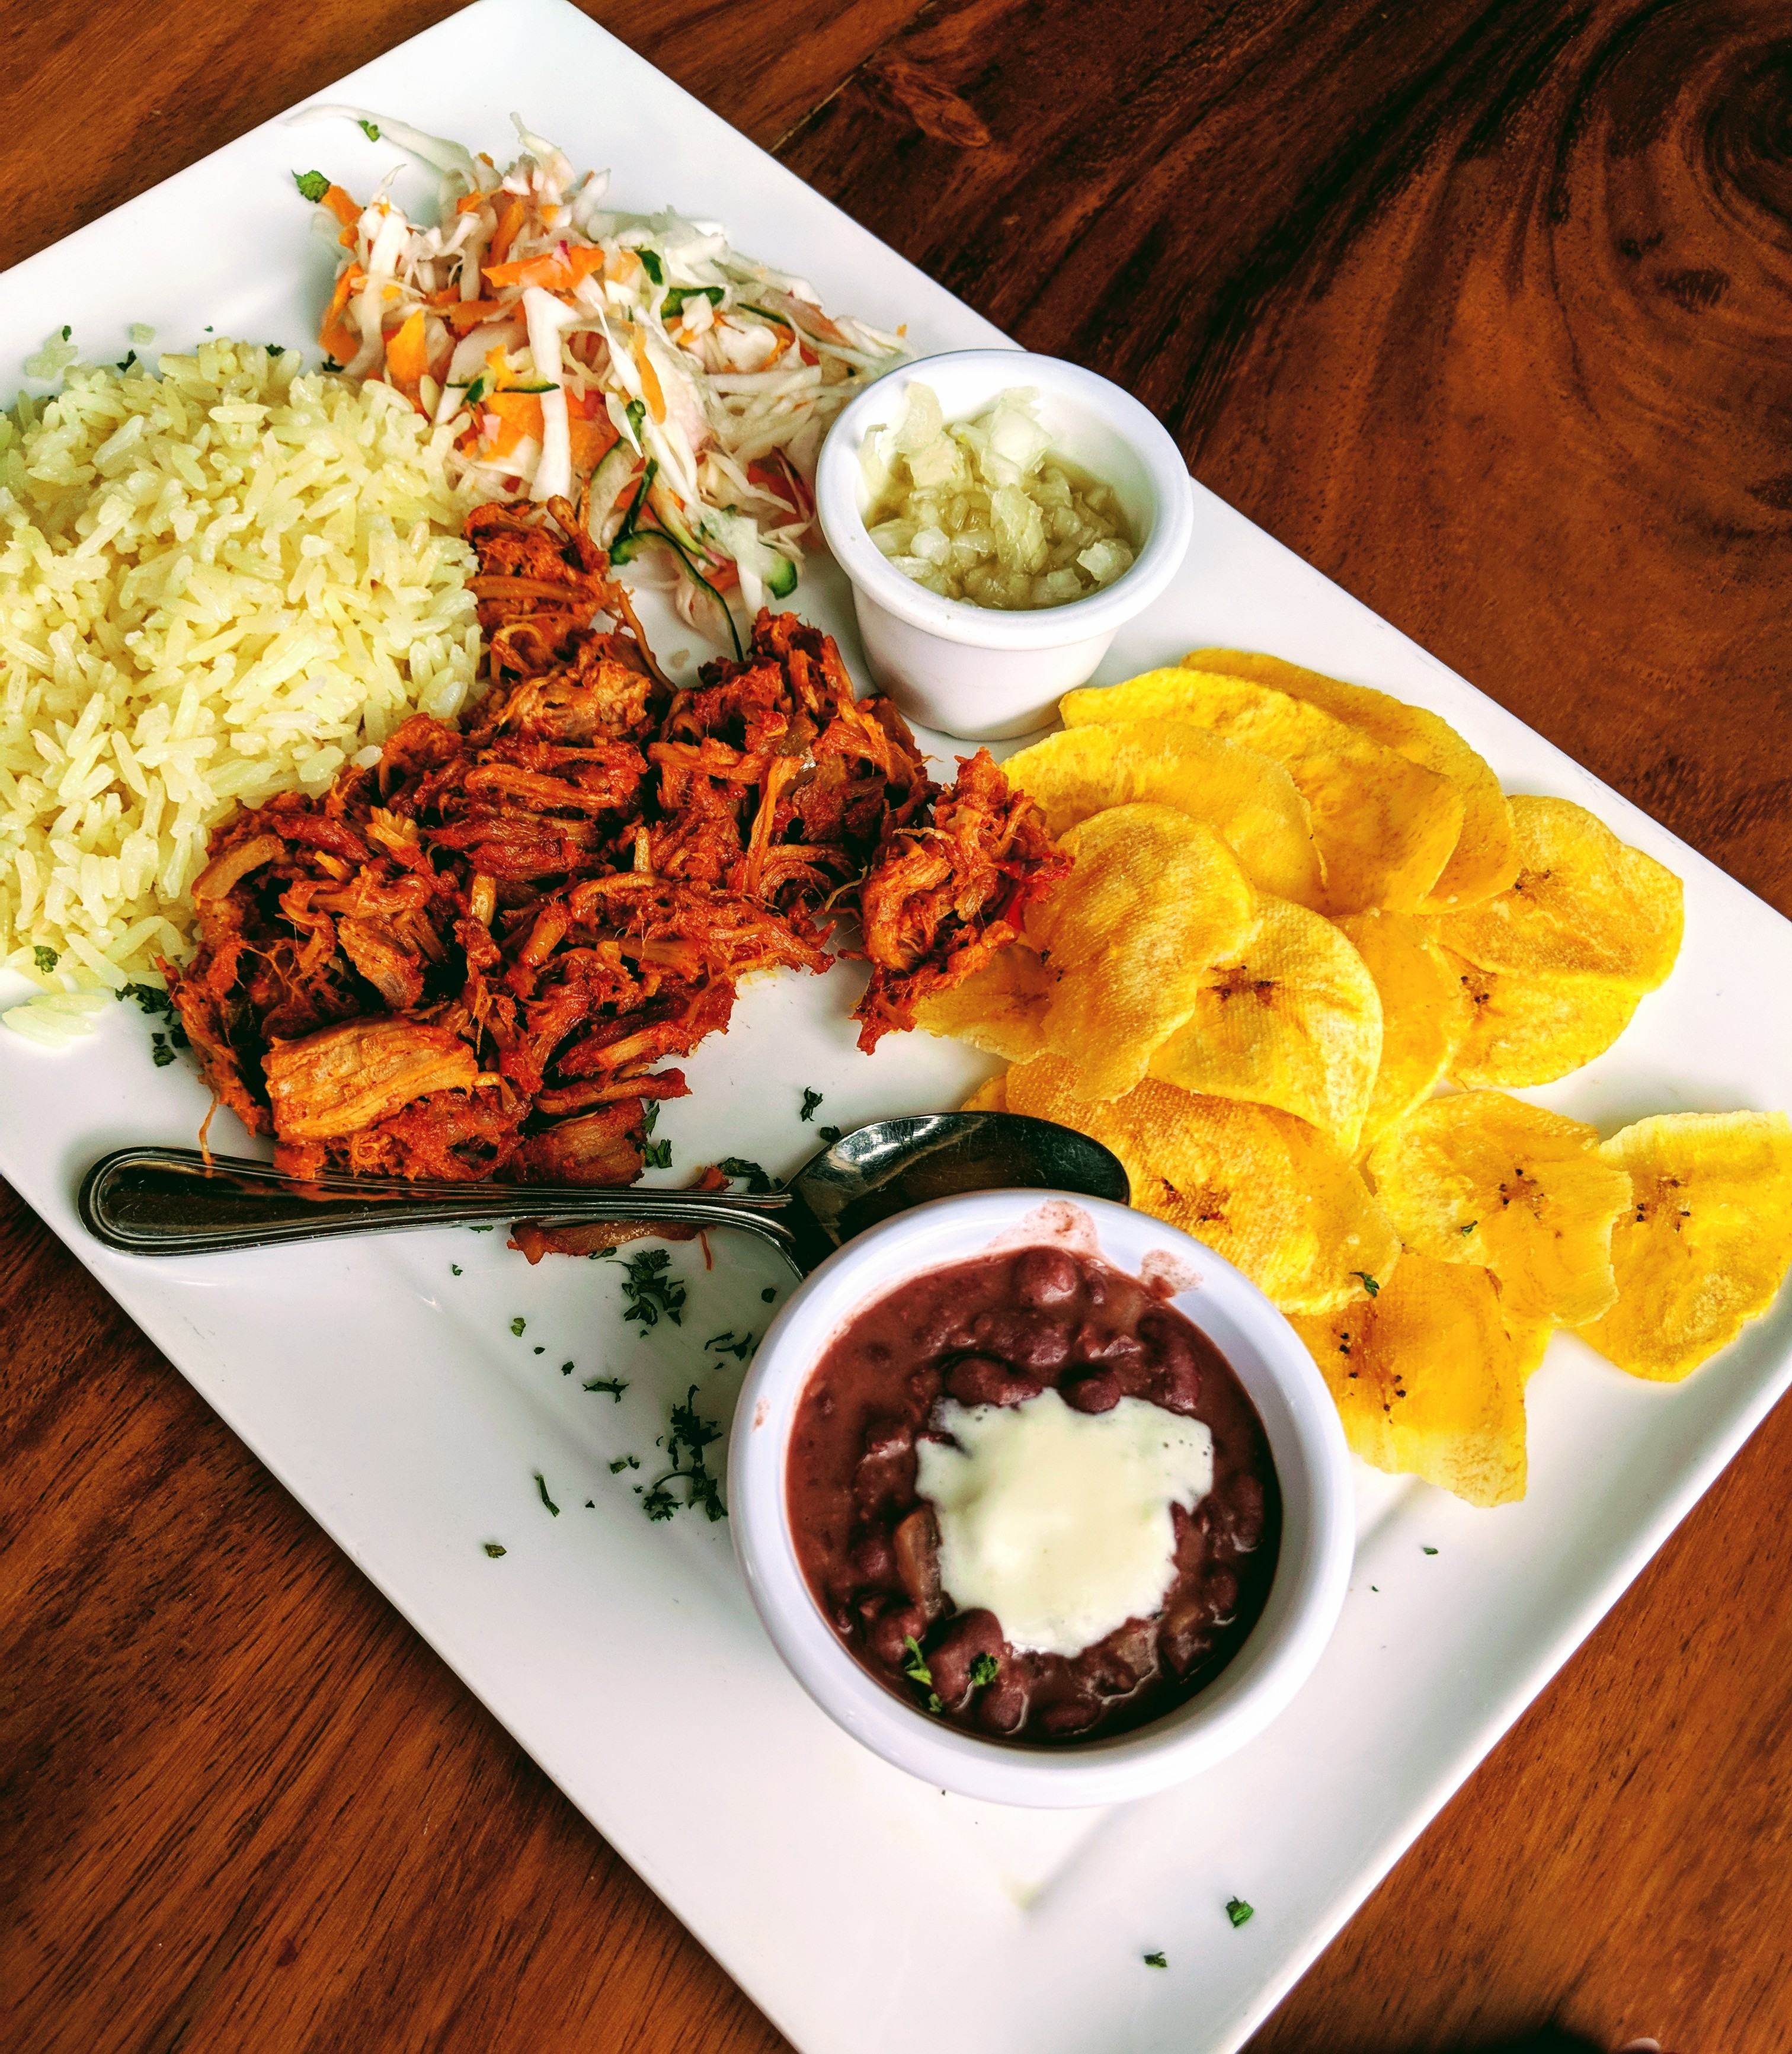 Nicaraguan food: 23 dishes along with Nicaraguan desserts and traditional drinks in Nicaragua.